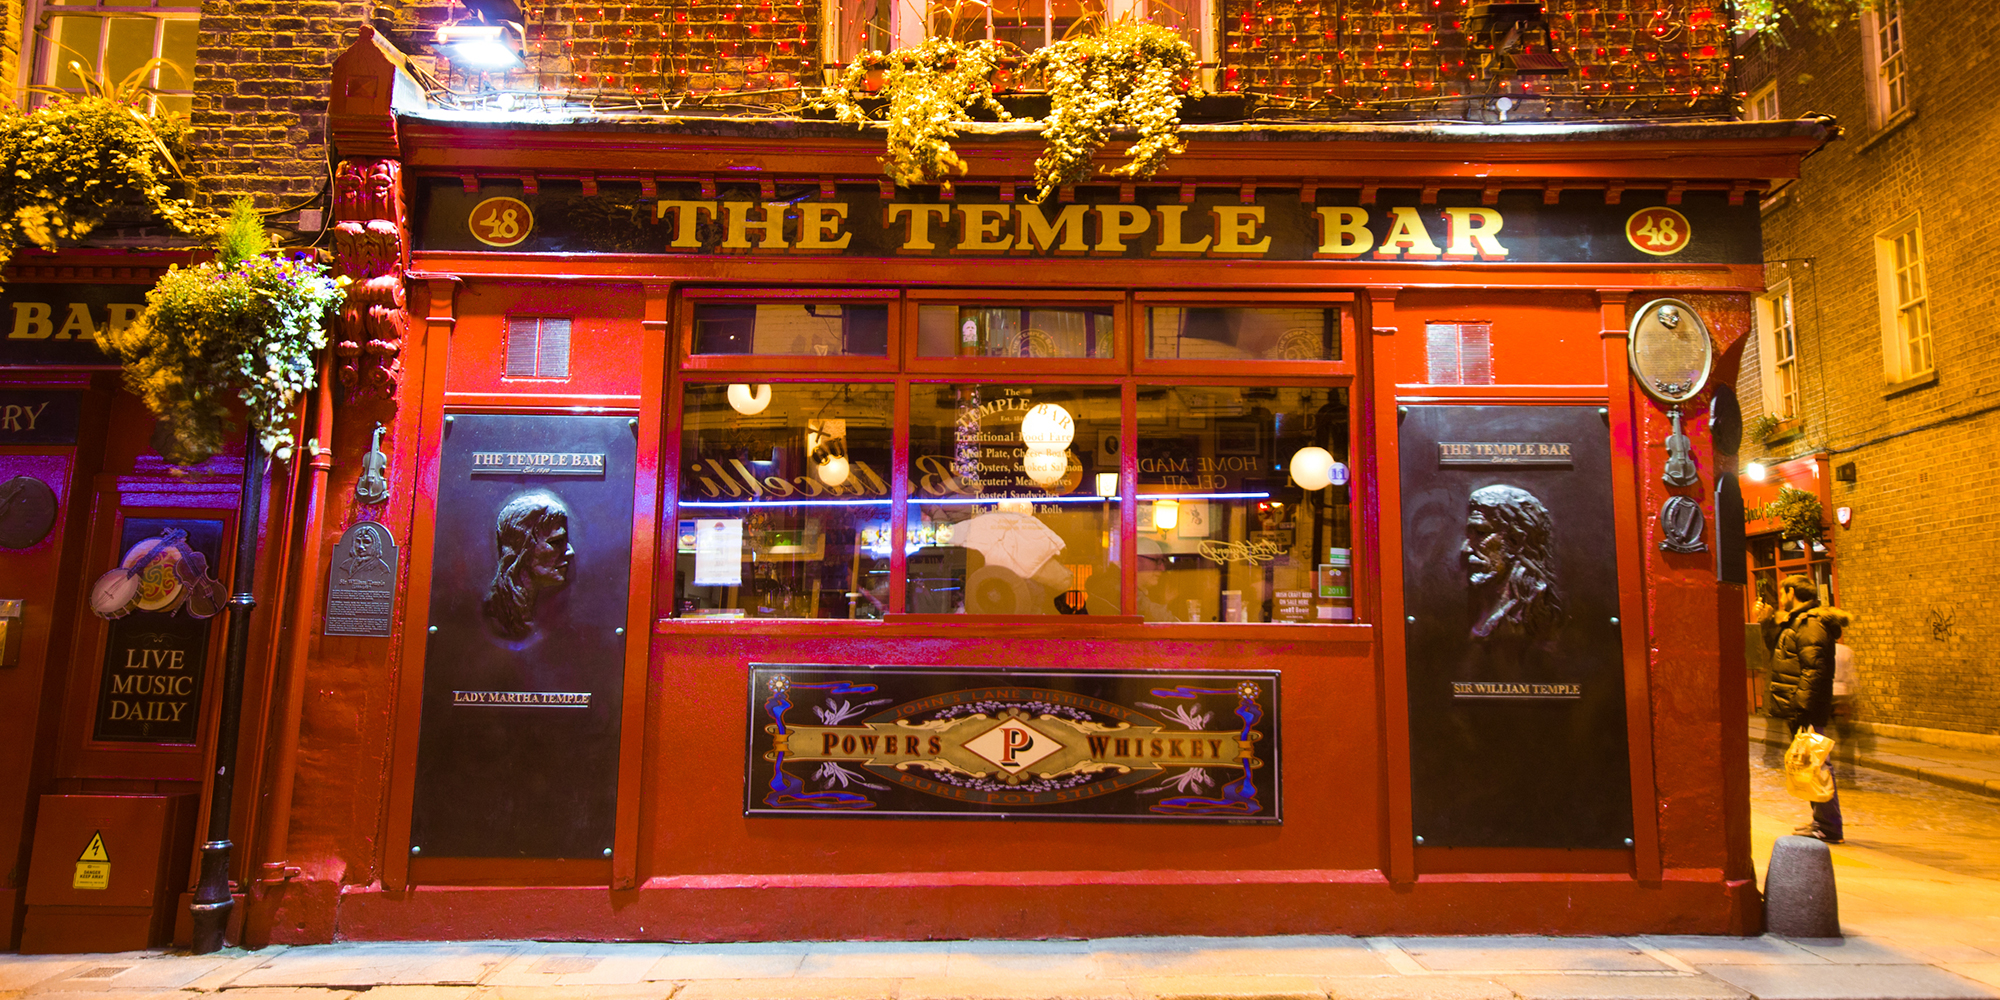 Dublin med TradFest Temple Bar